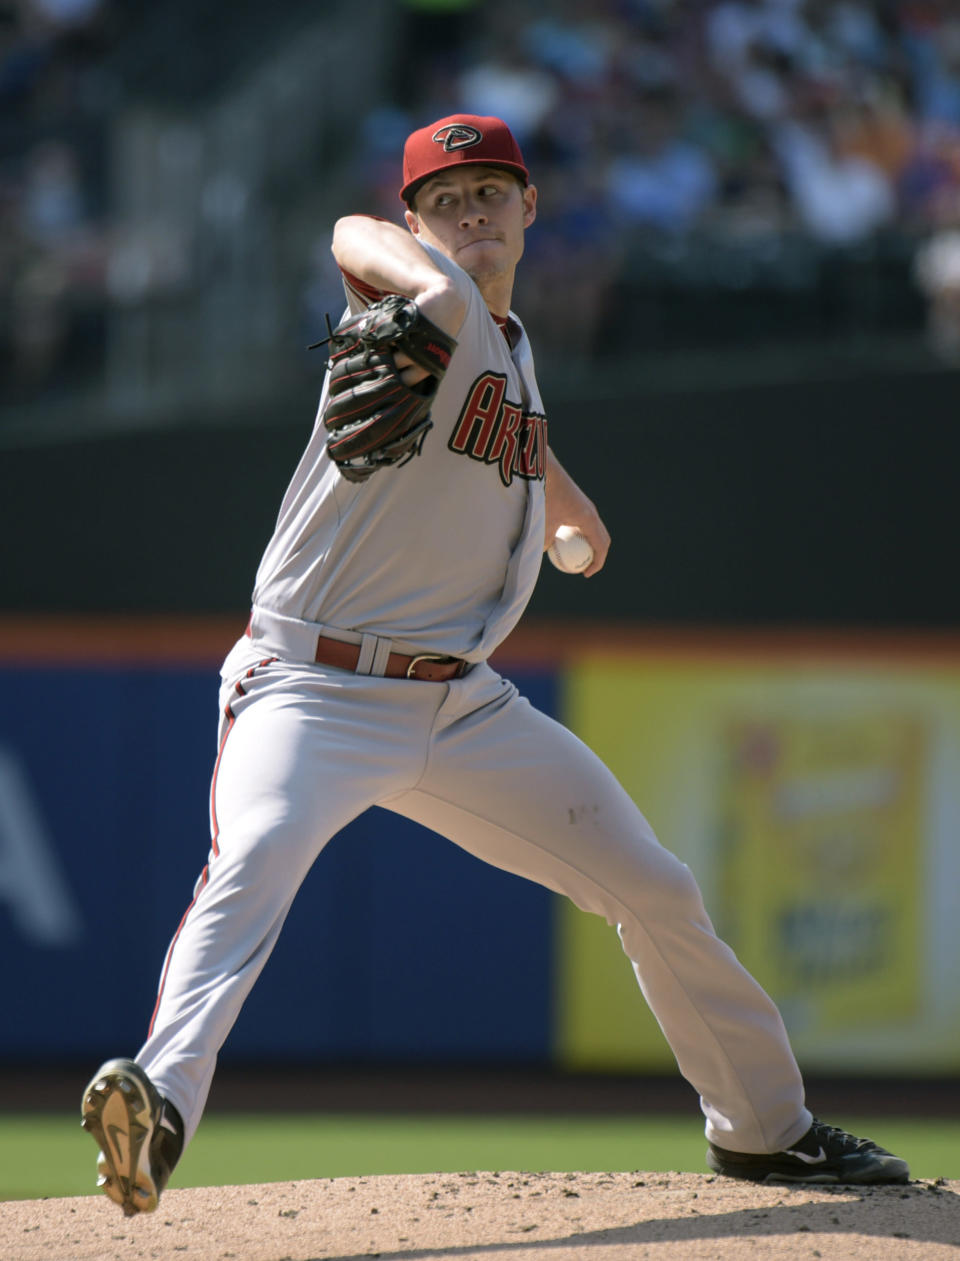 Arizona Diamondbacks pitcher Patrick Corbin delivers the ball to the New York Mets during the first inning of a baseball game Saturday, July 11, 2015, at Citi Field in New York. (AP Photo/Bill Kostroun)